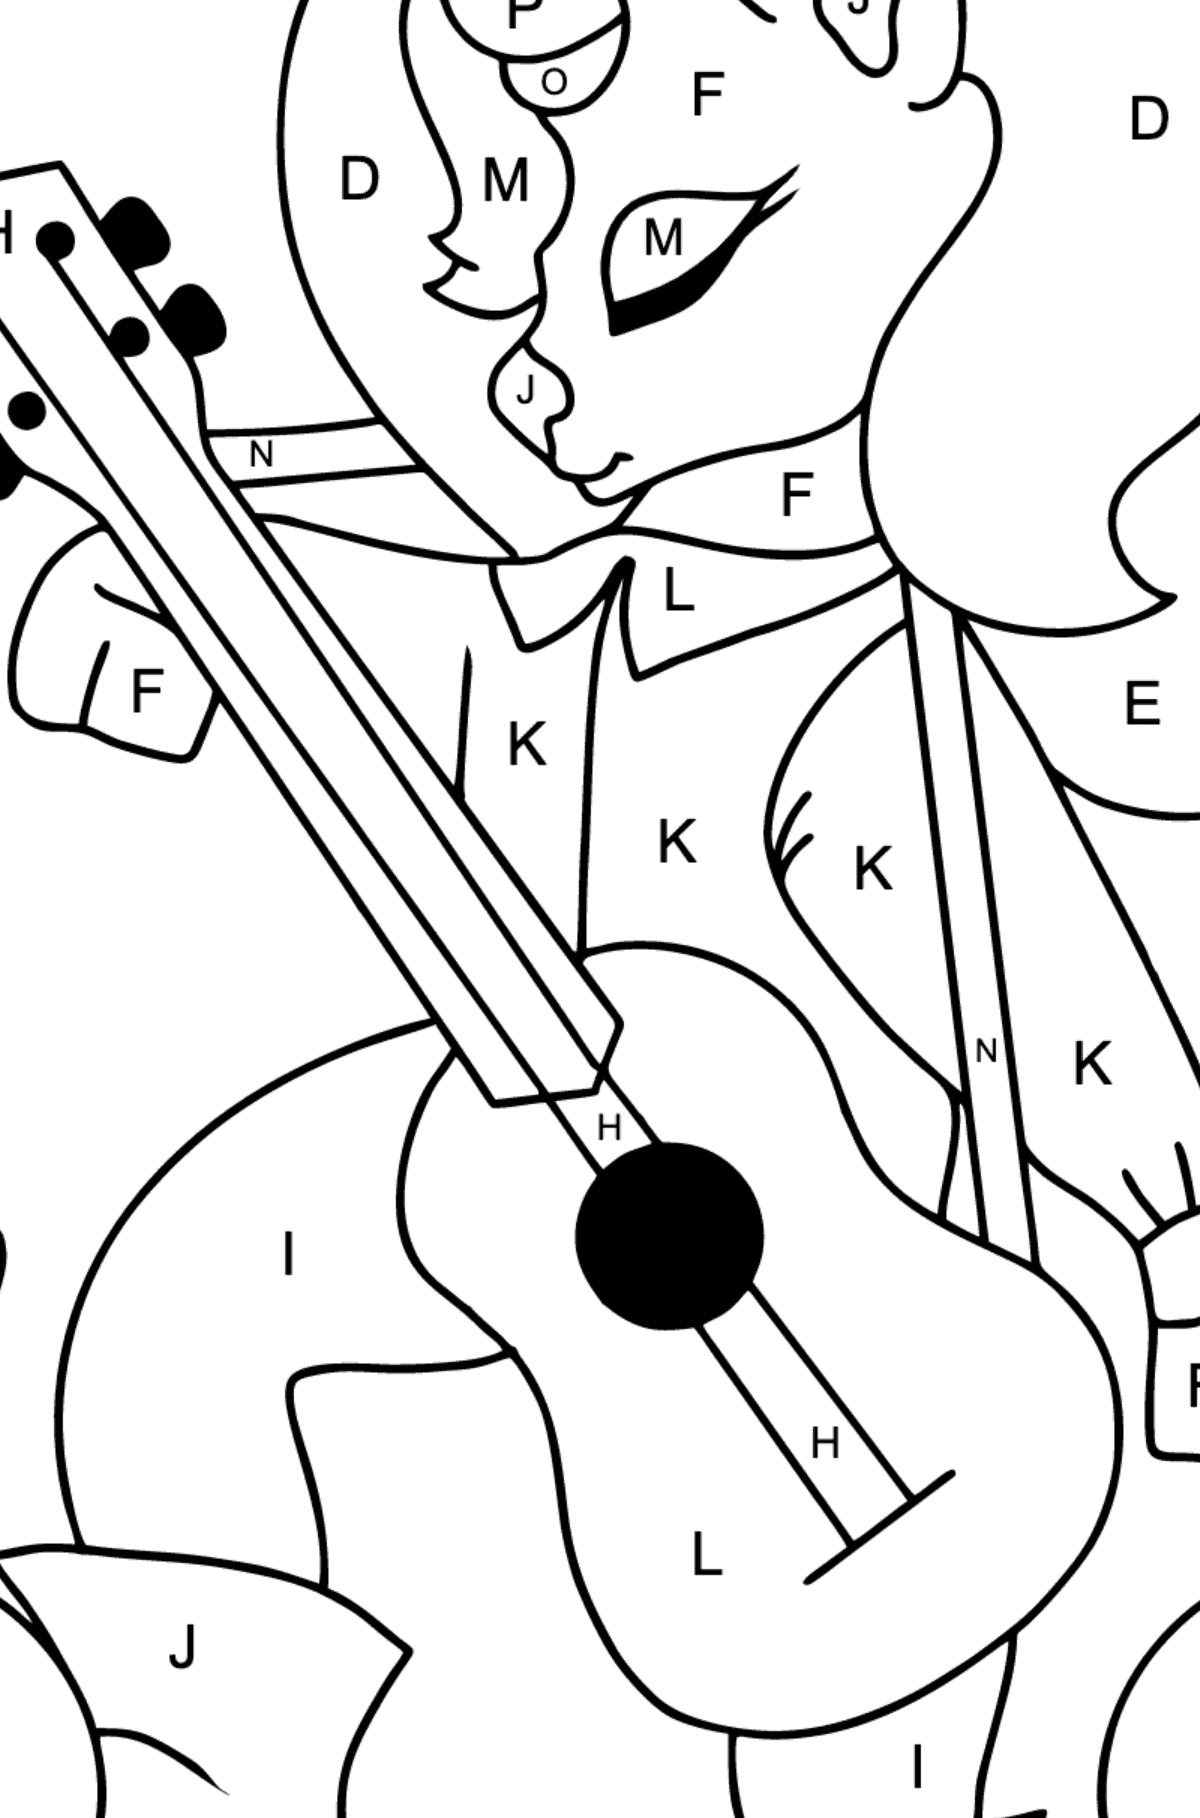 Complex Coloring Page - A Unicorn with a Guitar for Children  - Color by Letters